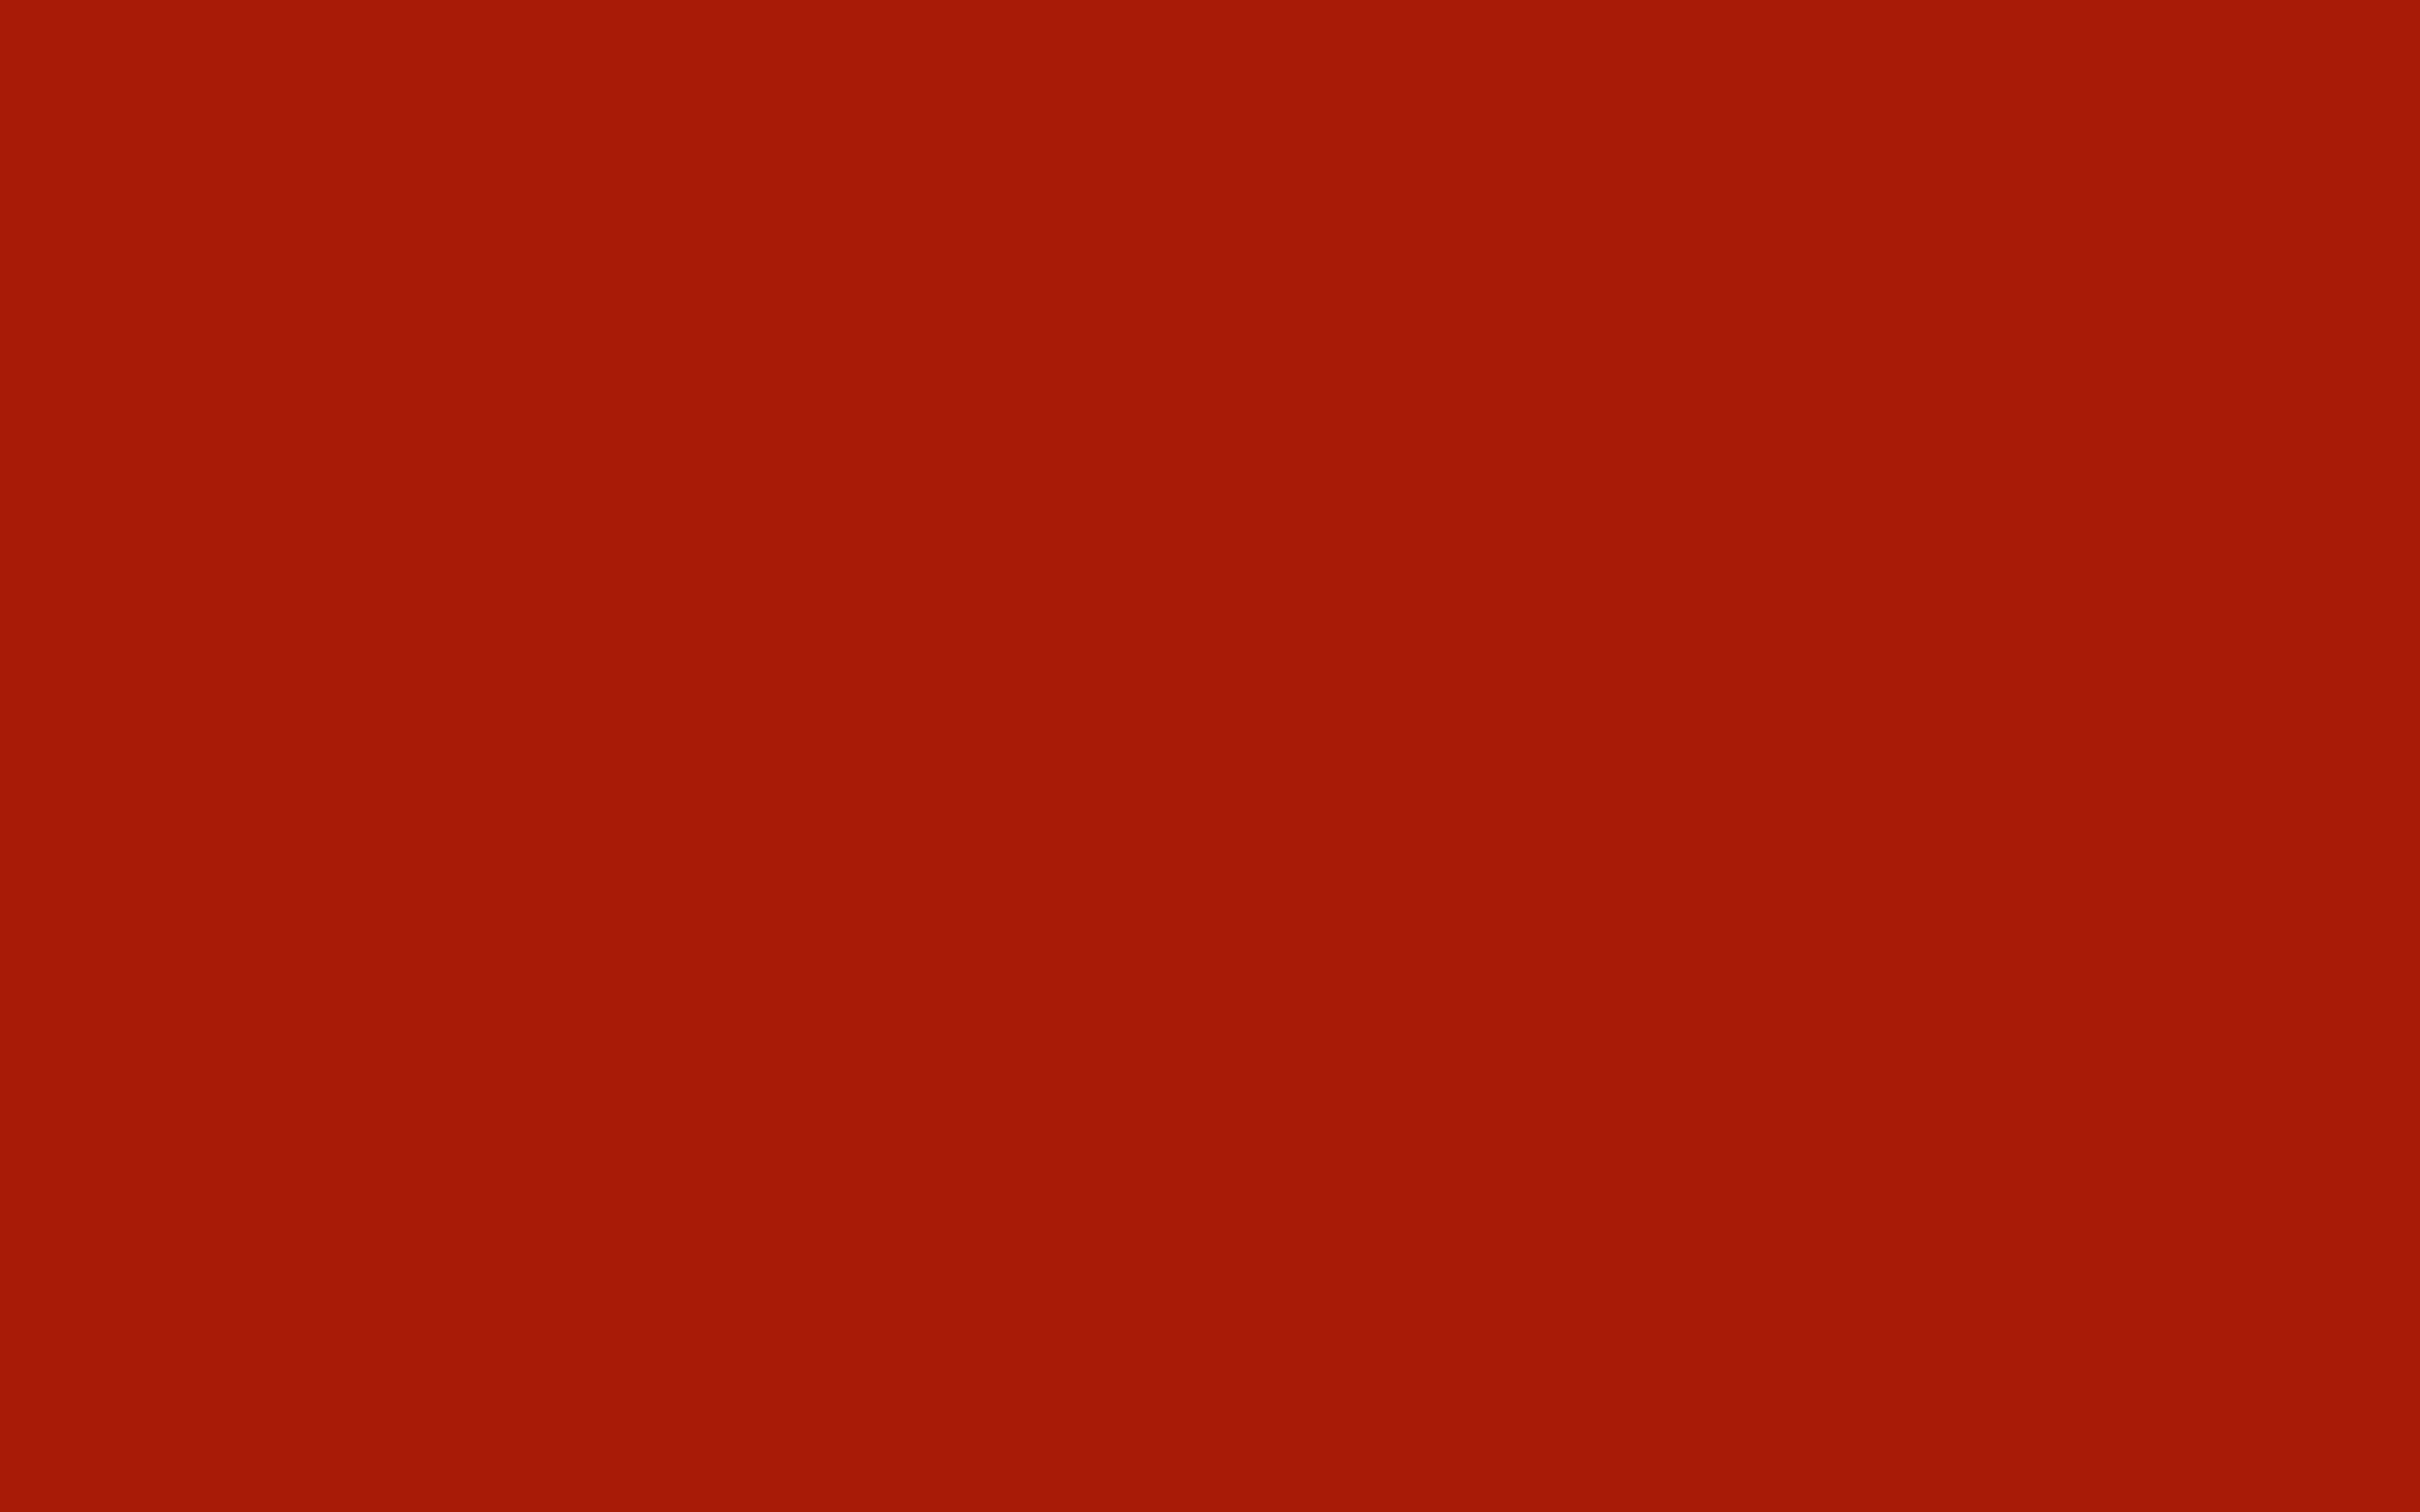 2560x1600 Rufous Solid Color Background